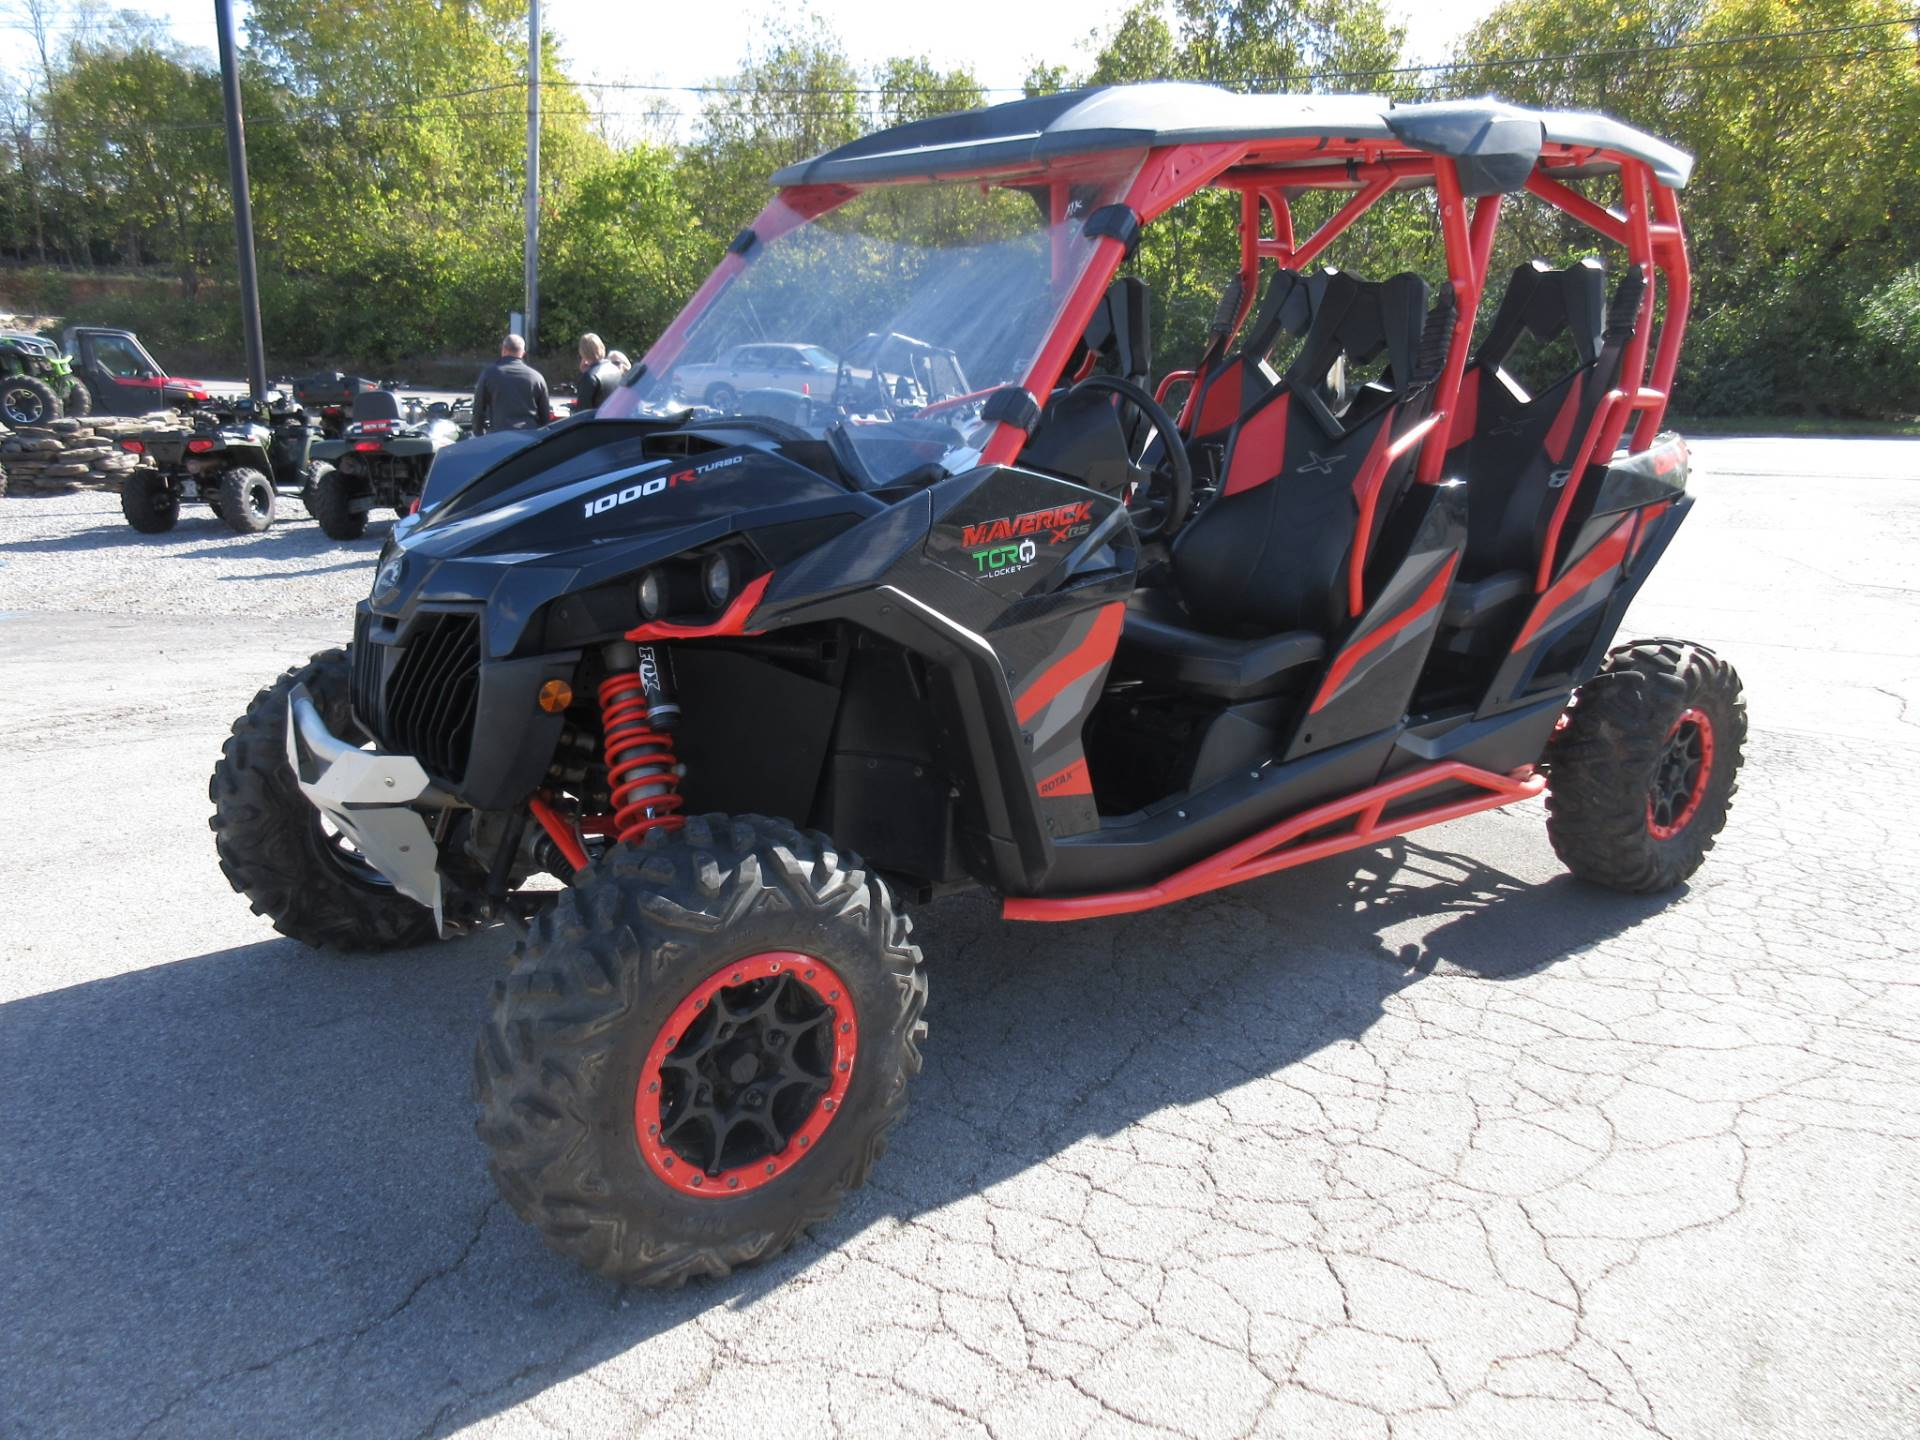 2017 Can-Am Maverick MAX X rs Turbo in Georgetown, Kentucky - Photo 4